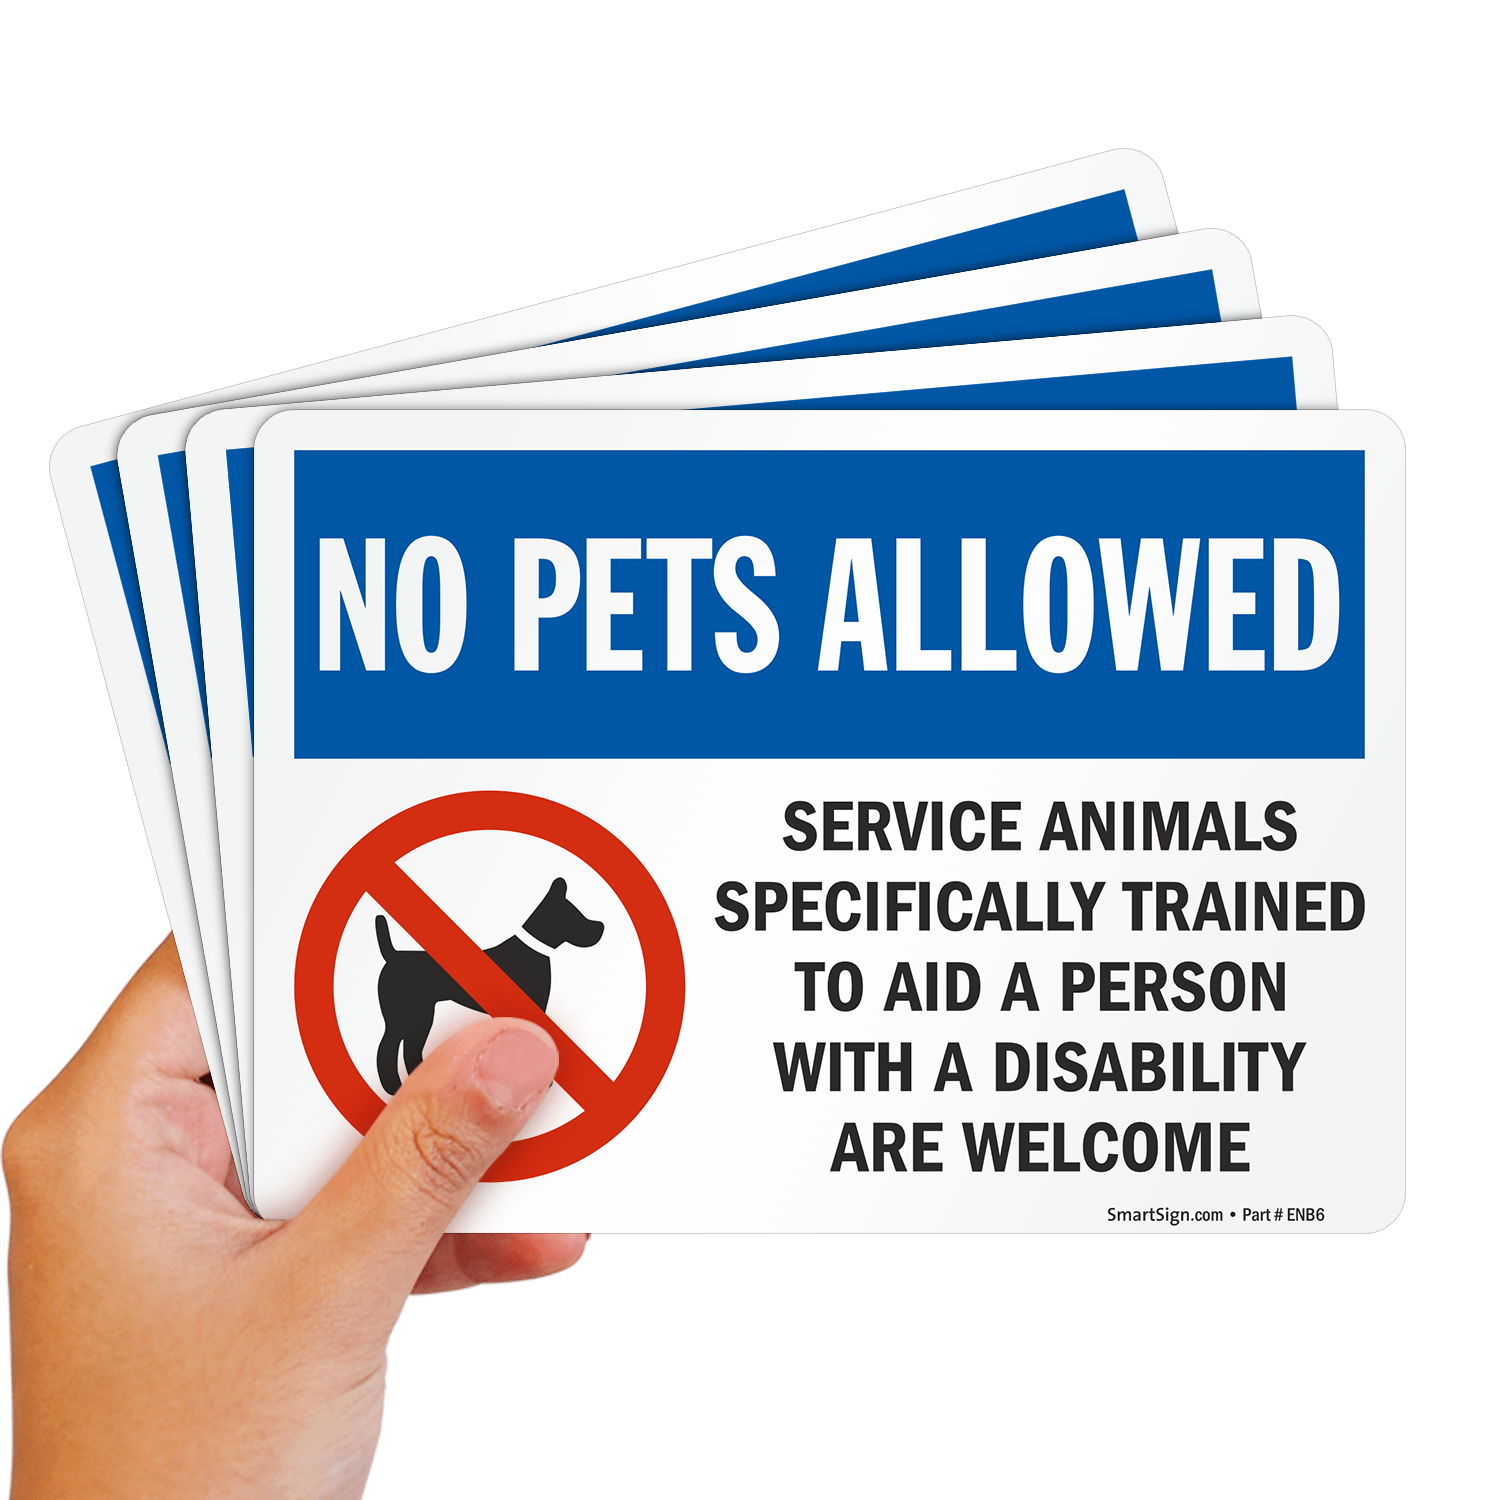 No Pets Allowed Service Animals Trained Are Welcome Sign